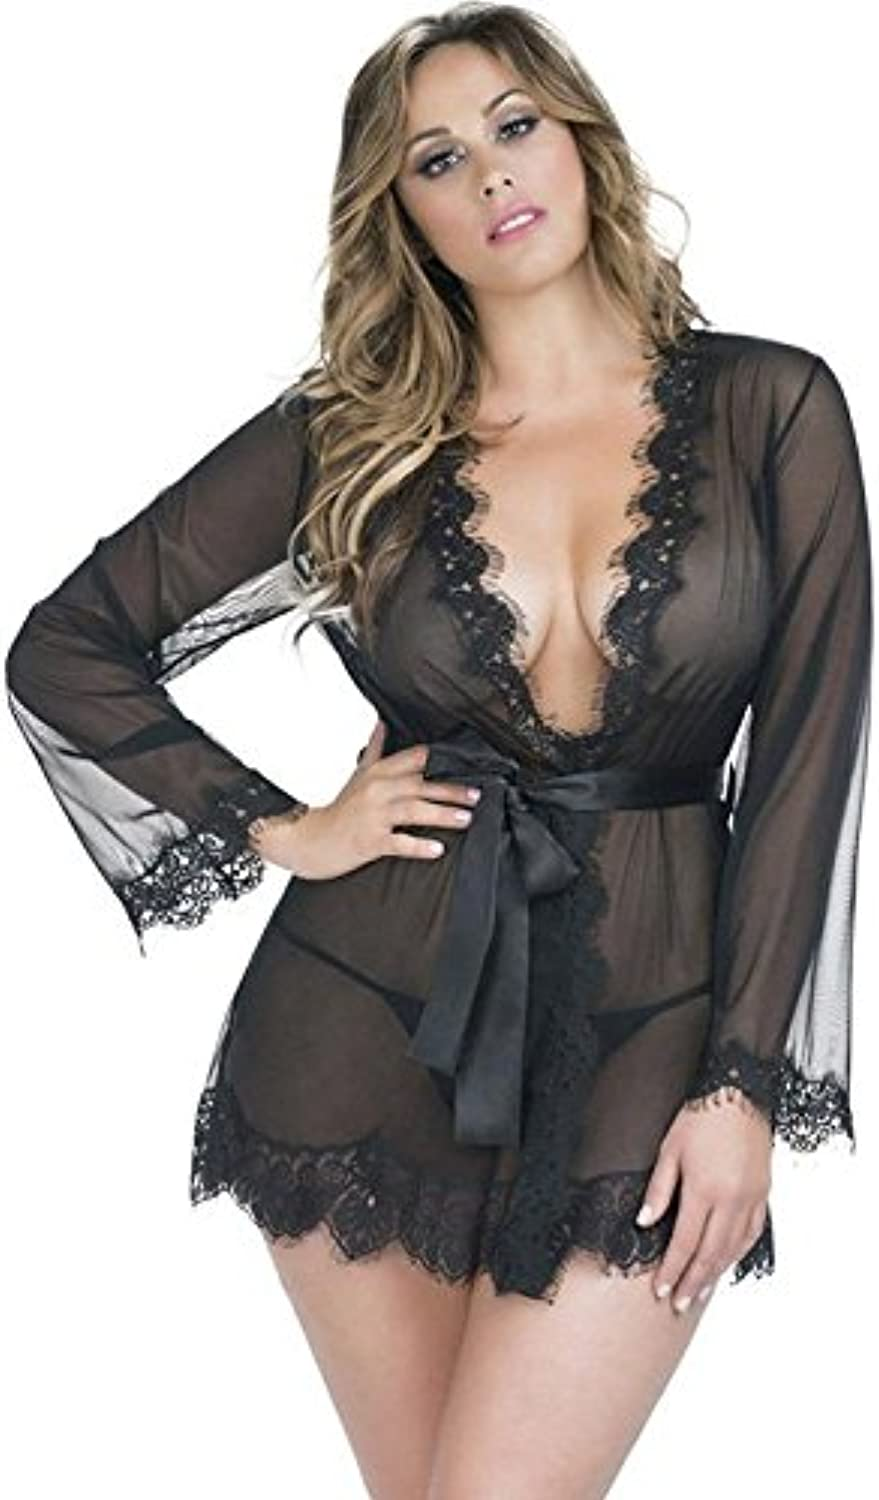 OOFAY Women's Pajamas Lace Cut Nightgown Thongs Pajamas Mini Lingerie